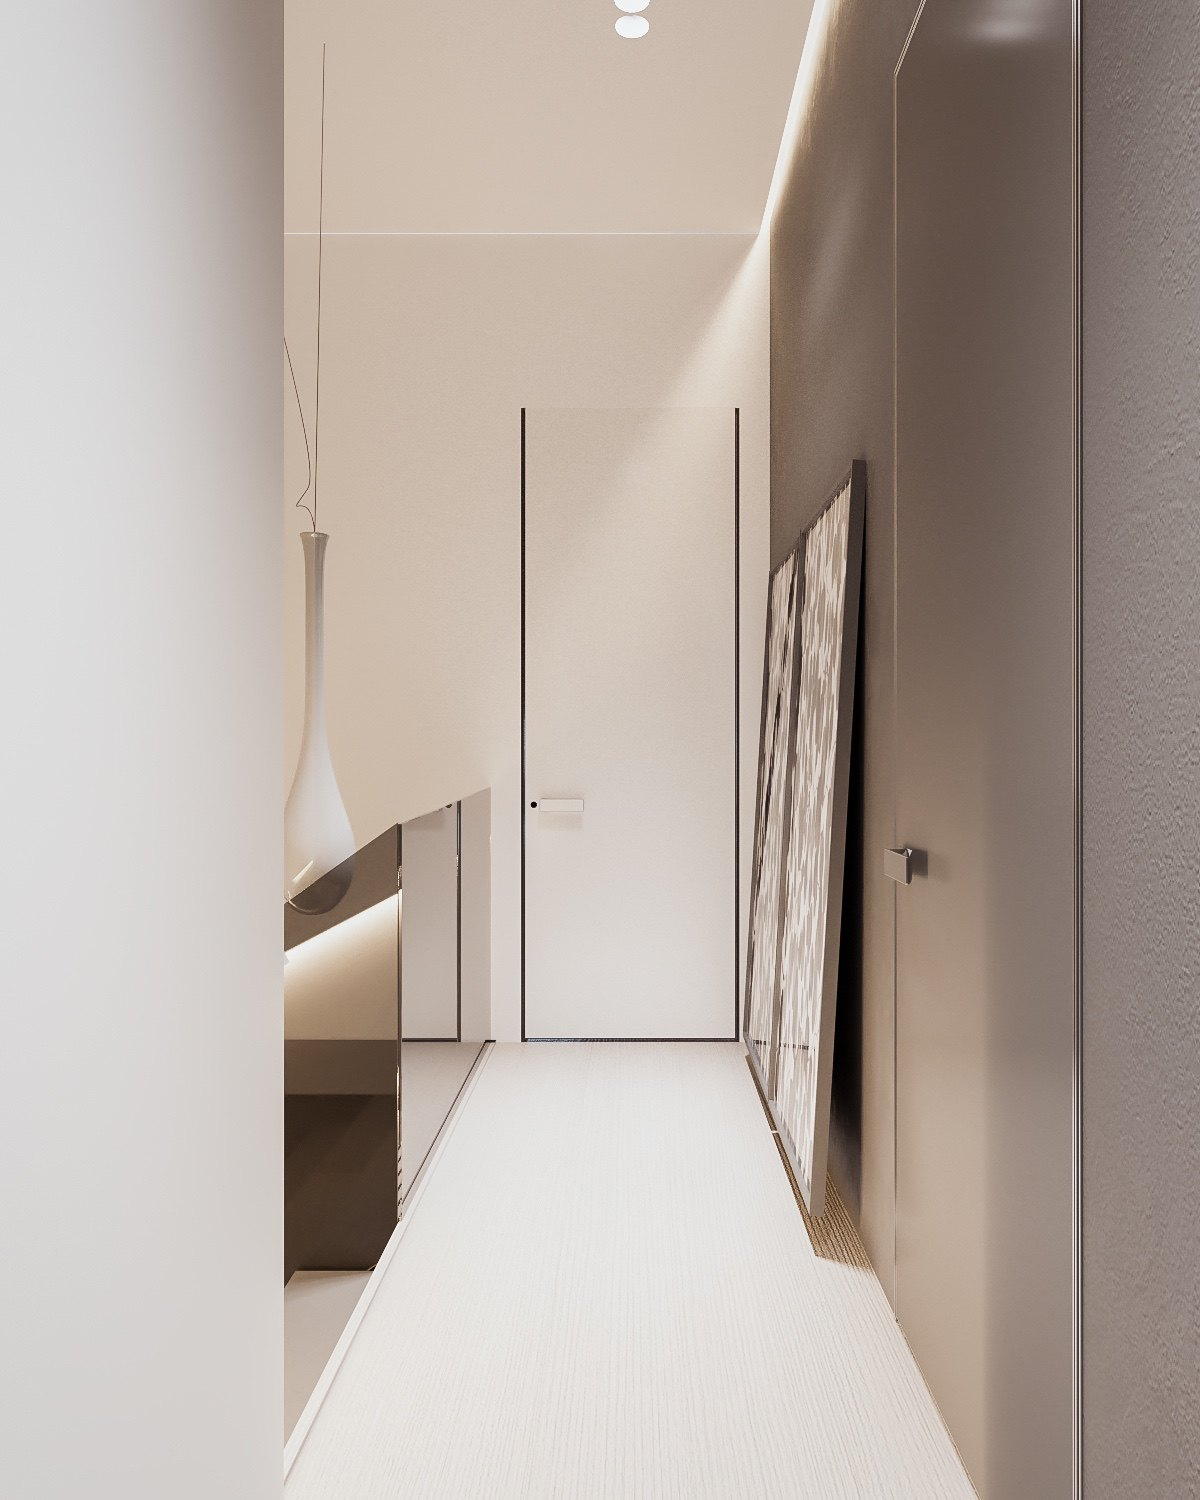 Stylish White Plywood Floors - A minimalist family home with a bright bedroom for the kids